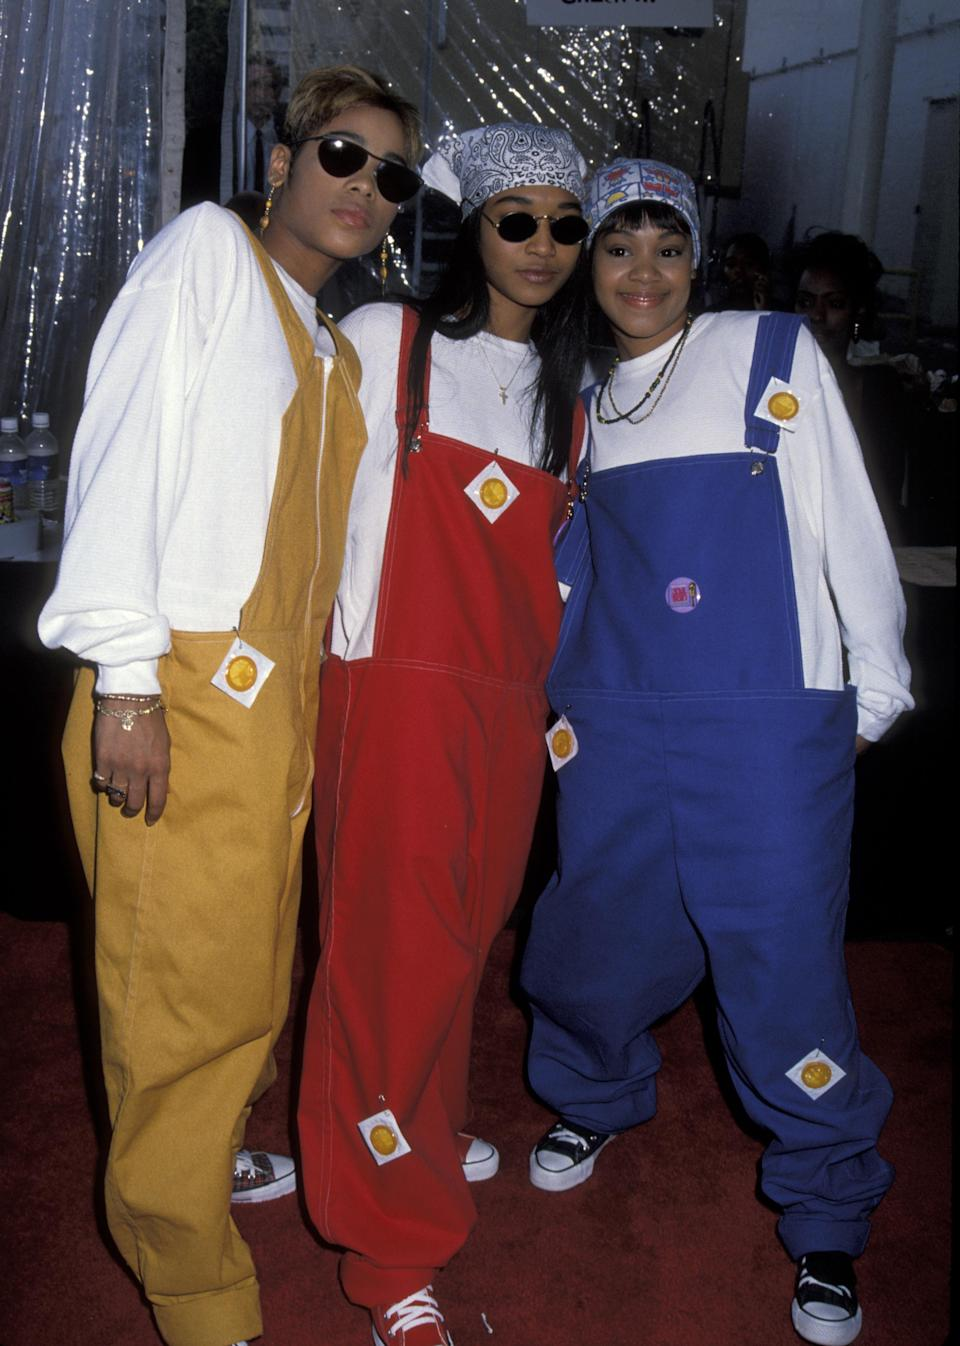 "<strong><h2>TLC</h2></strong>The hardest part of dressing like TLC is definitely going to be choosing a look. With a career spanning over a decade even before the death of member Lisa ""Left Eye"" Lopes, there are a lot to choose from. But comfort always takes priority for me, so these oversized overalls from the 90s are perfect. I'd recommend getting <u><a href=""https://www.amazon.com/Dickies-Mens-Overall-Brown-32X30/dp/B001T7SQWW/ref=sr_1_7?ie=UTF8&qid=1507043708&sr=8-7&keywords=mens+bib+overalls"" rel=""nofollow noopener"" target=""_blank"" data-ylk=""slk:men's overalls"" class=""link rapid-noclick-resp"">men's overalls</a></u> for that baggy look.<br><br>Stick some condoms on them to promote safe sex just like the members of TLC did. Accessorise with shades and bandanas to taste.<span class=""copyright"">Photo: Jim Smeal/Getty.</span>"